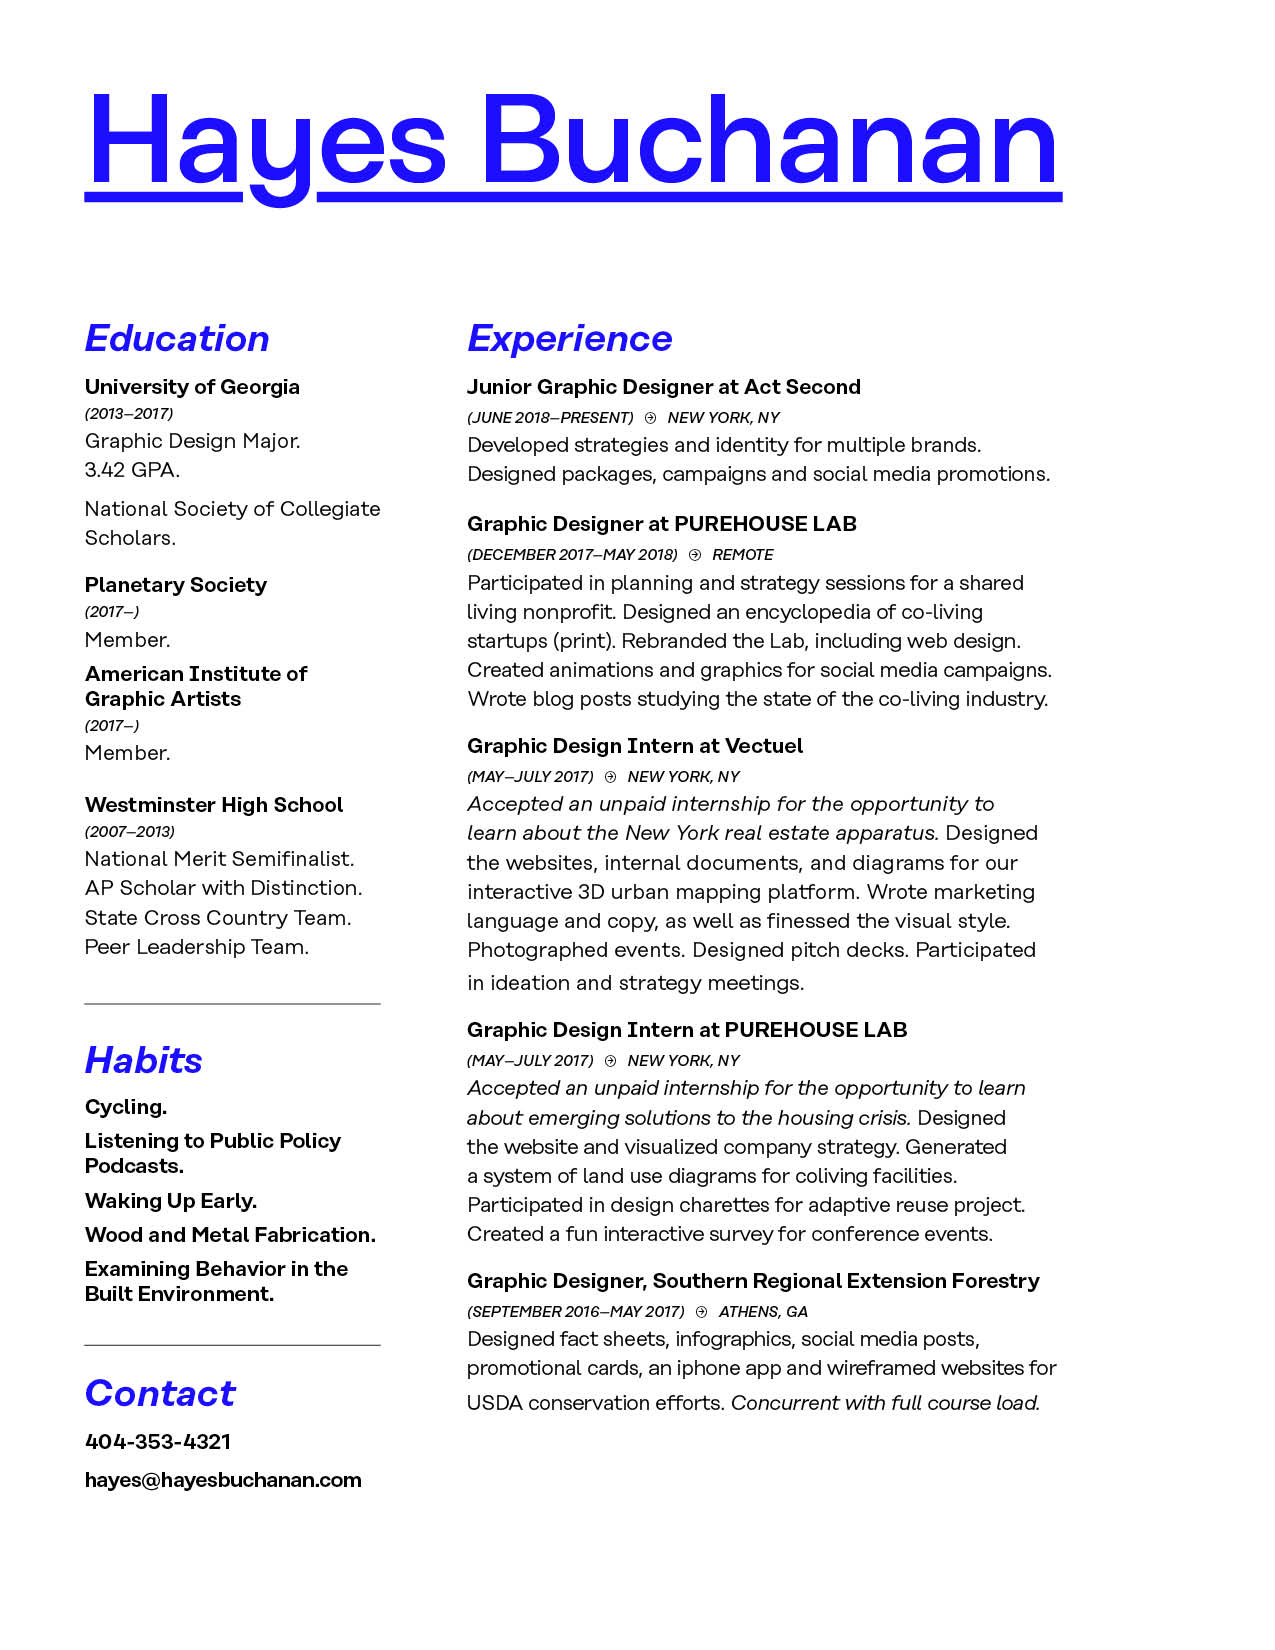 Buchanan_Resume(June)